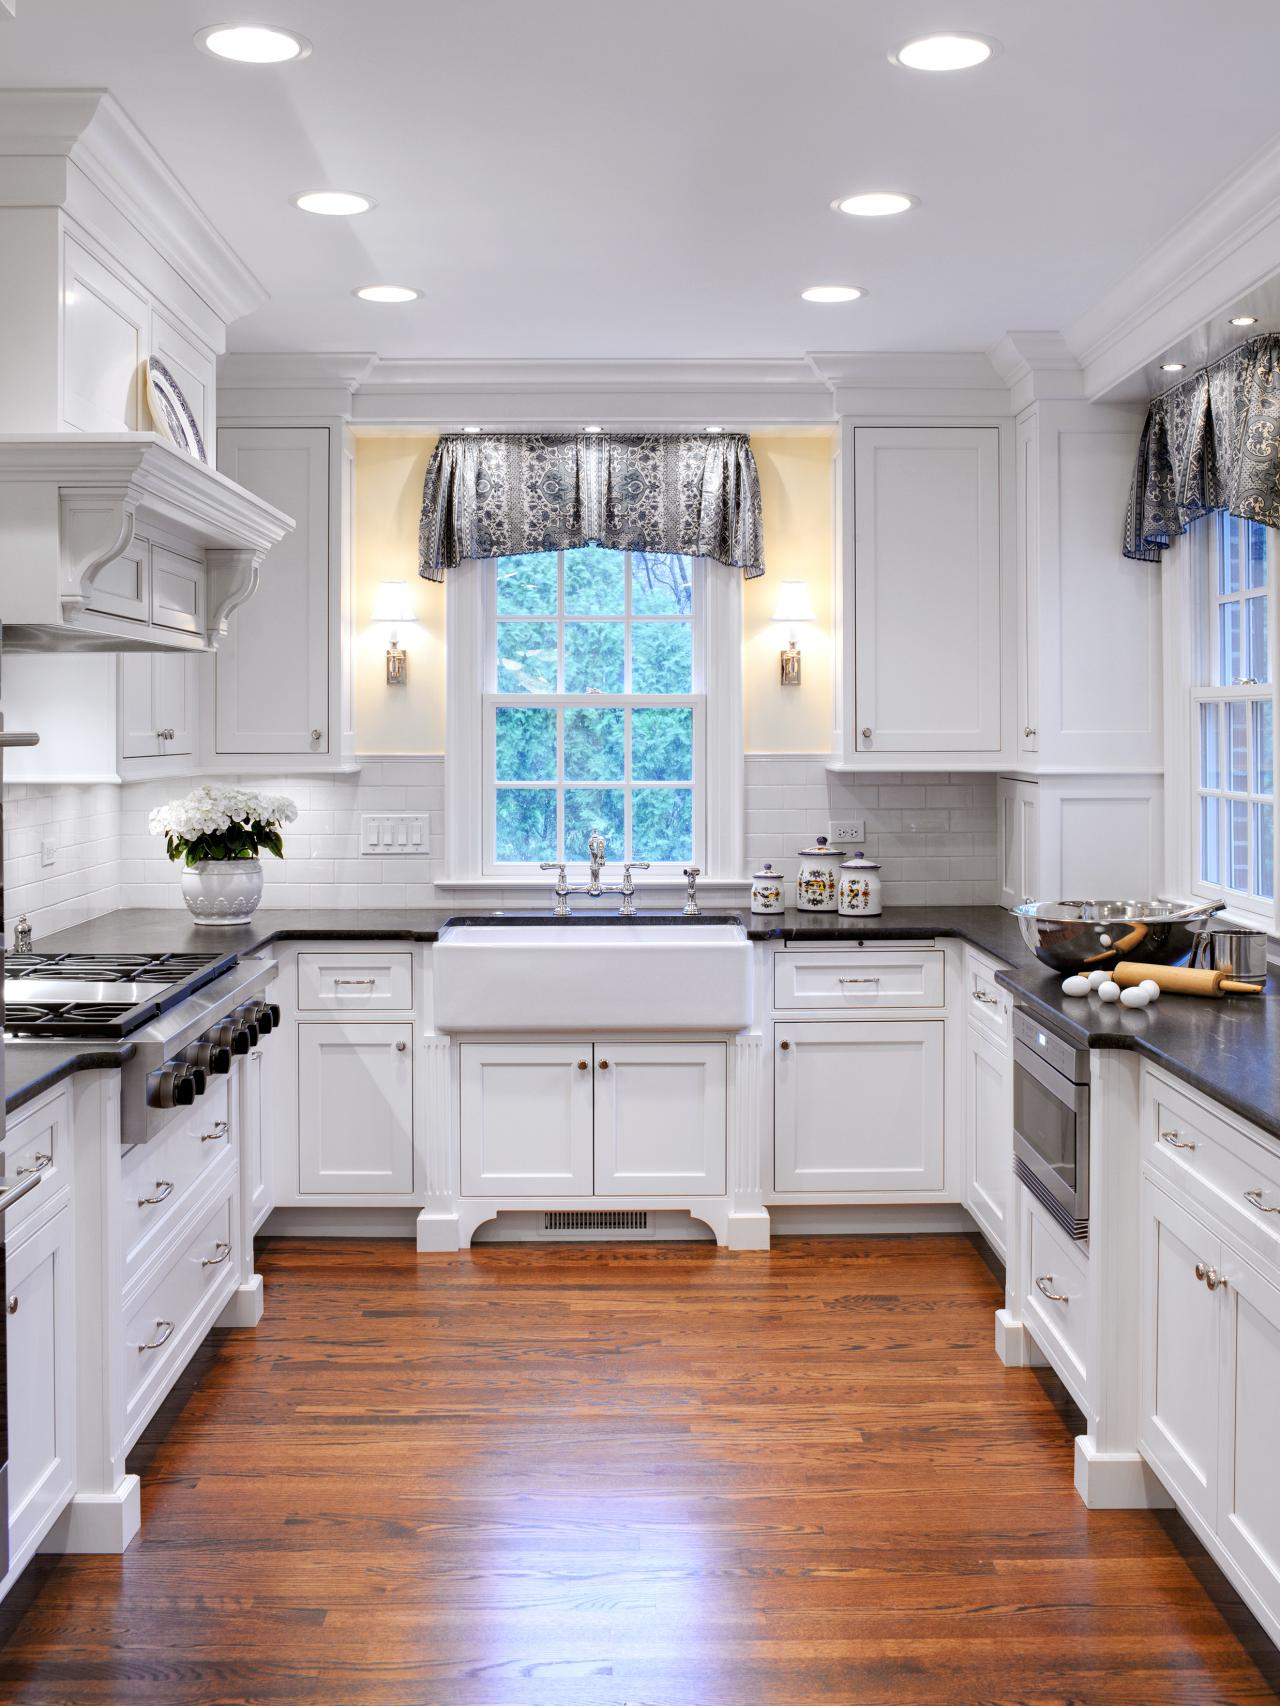 Designer Kitchen Window Treatments Hgtv Pictures Ideas Kitchen Ideas Design With Cabinets